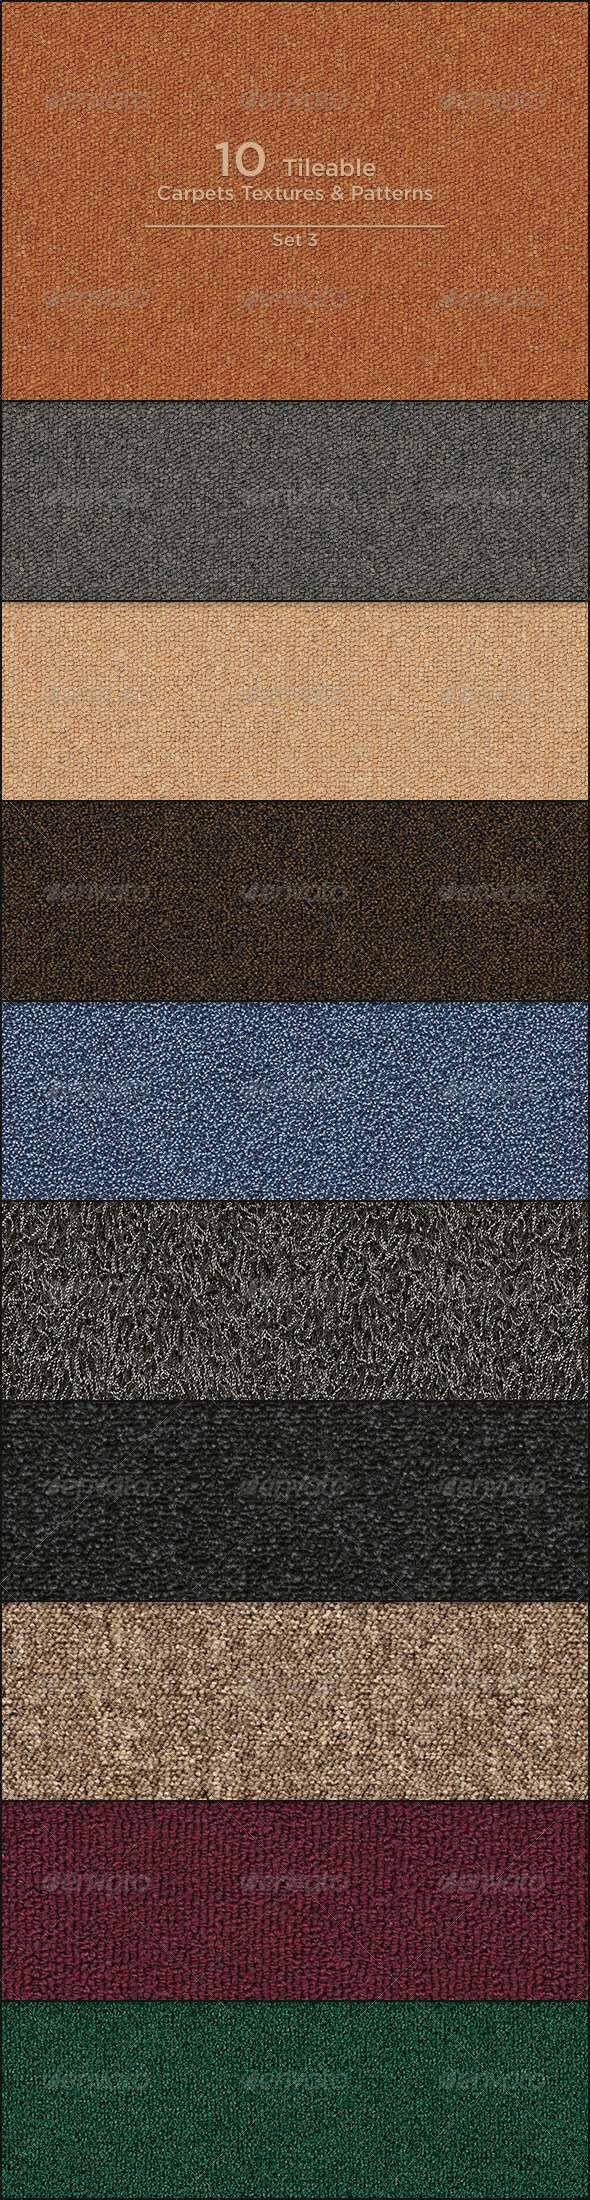 10 Tileable Carpet Textures/Patterns - Miscellaneous Textures / Fills / Patterns